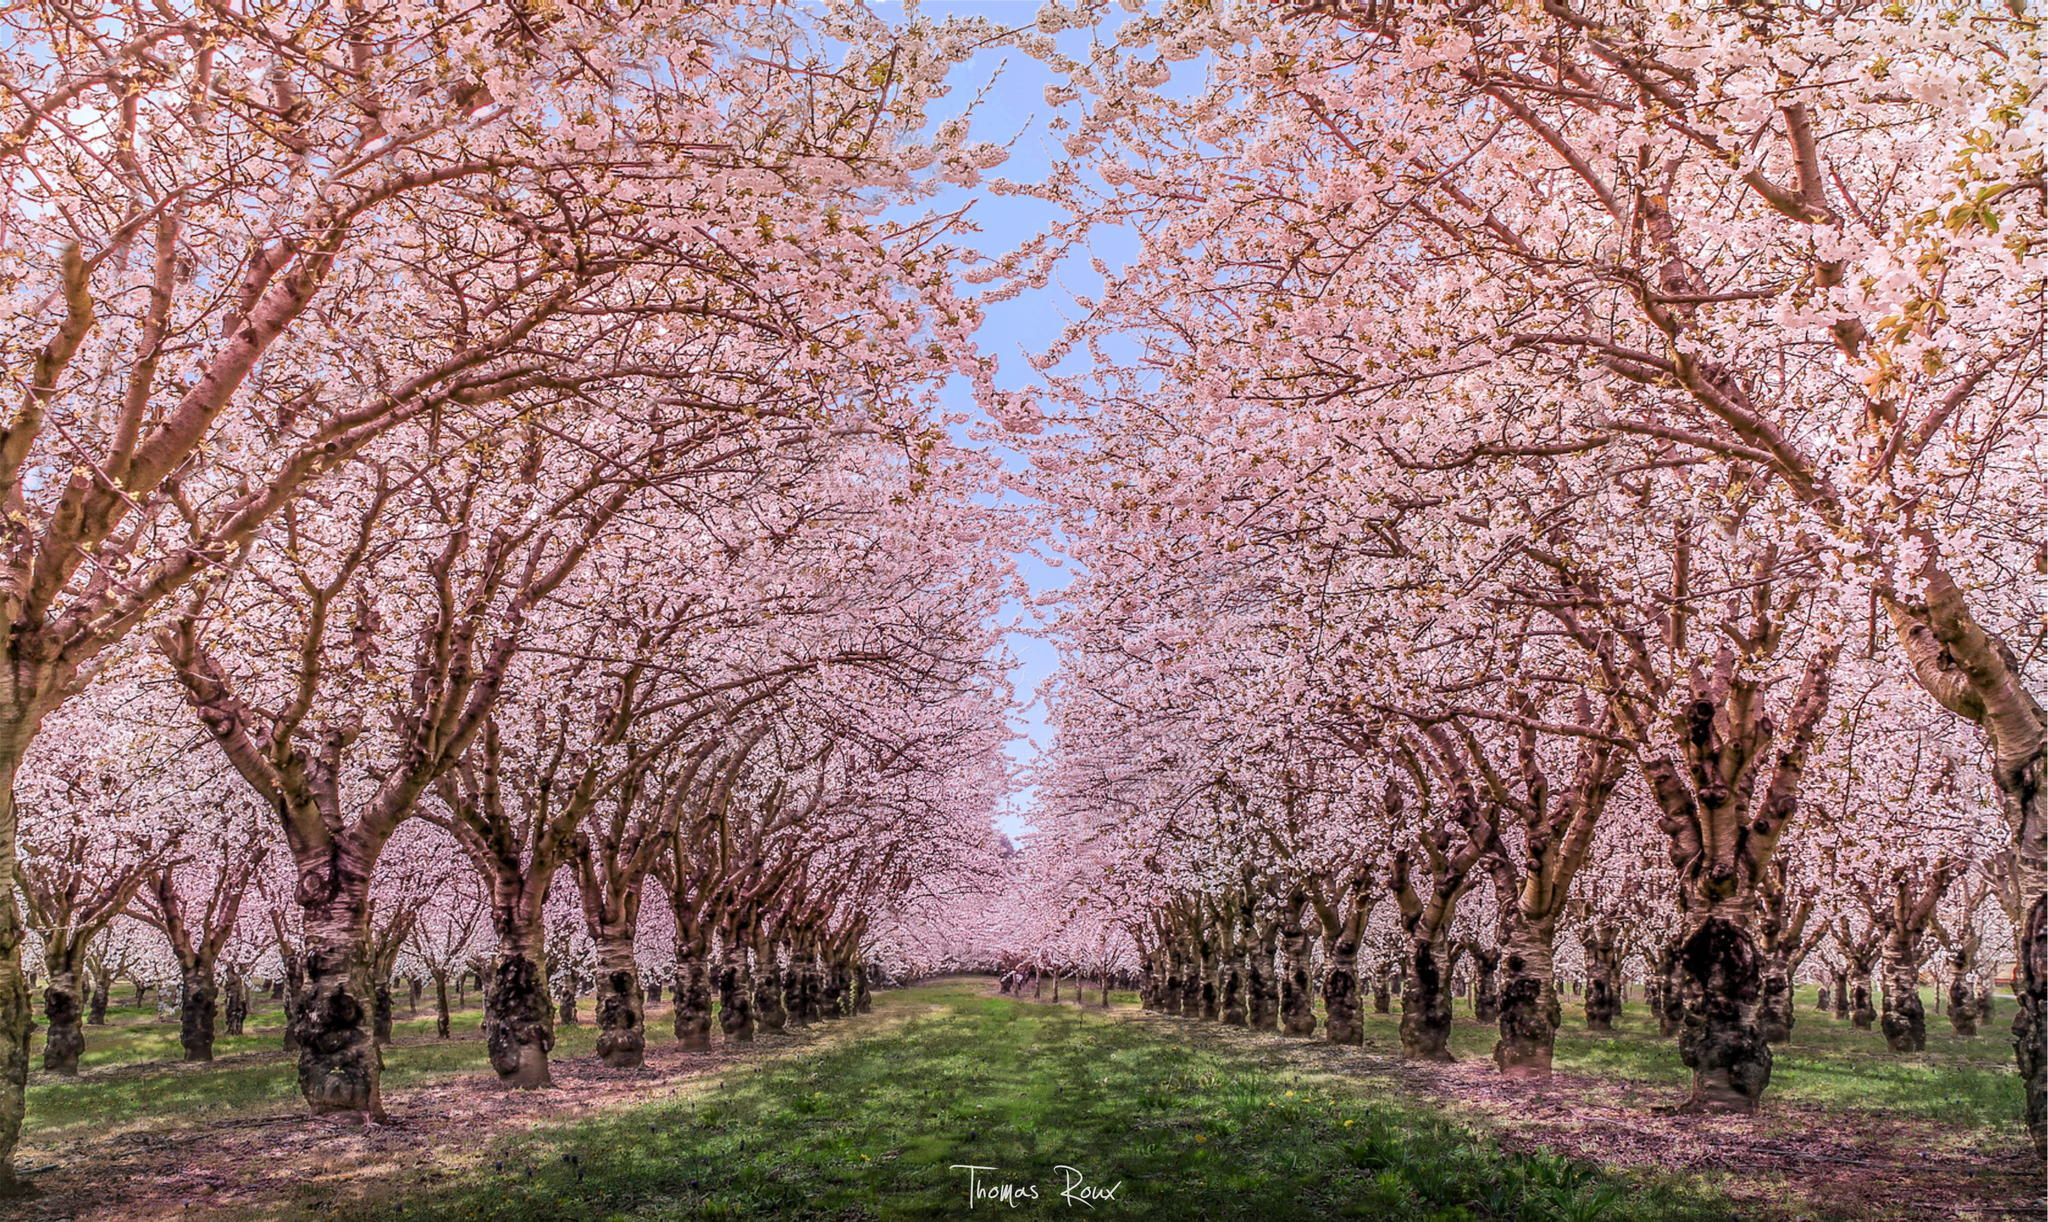 45 Charming Cherry Blossoms That Will Inspire Your Day Blossom Trees Beautiful Tree Cherry Blossom